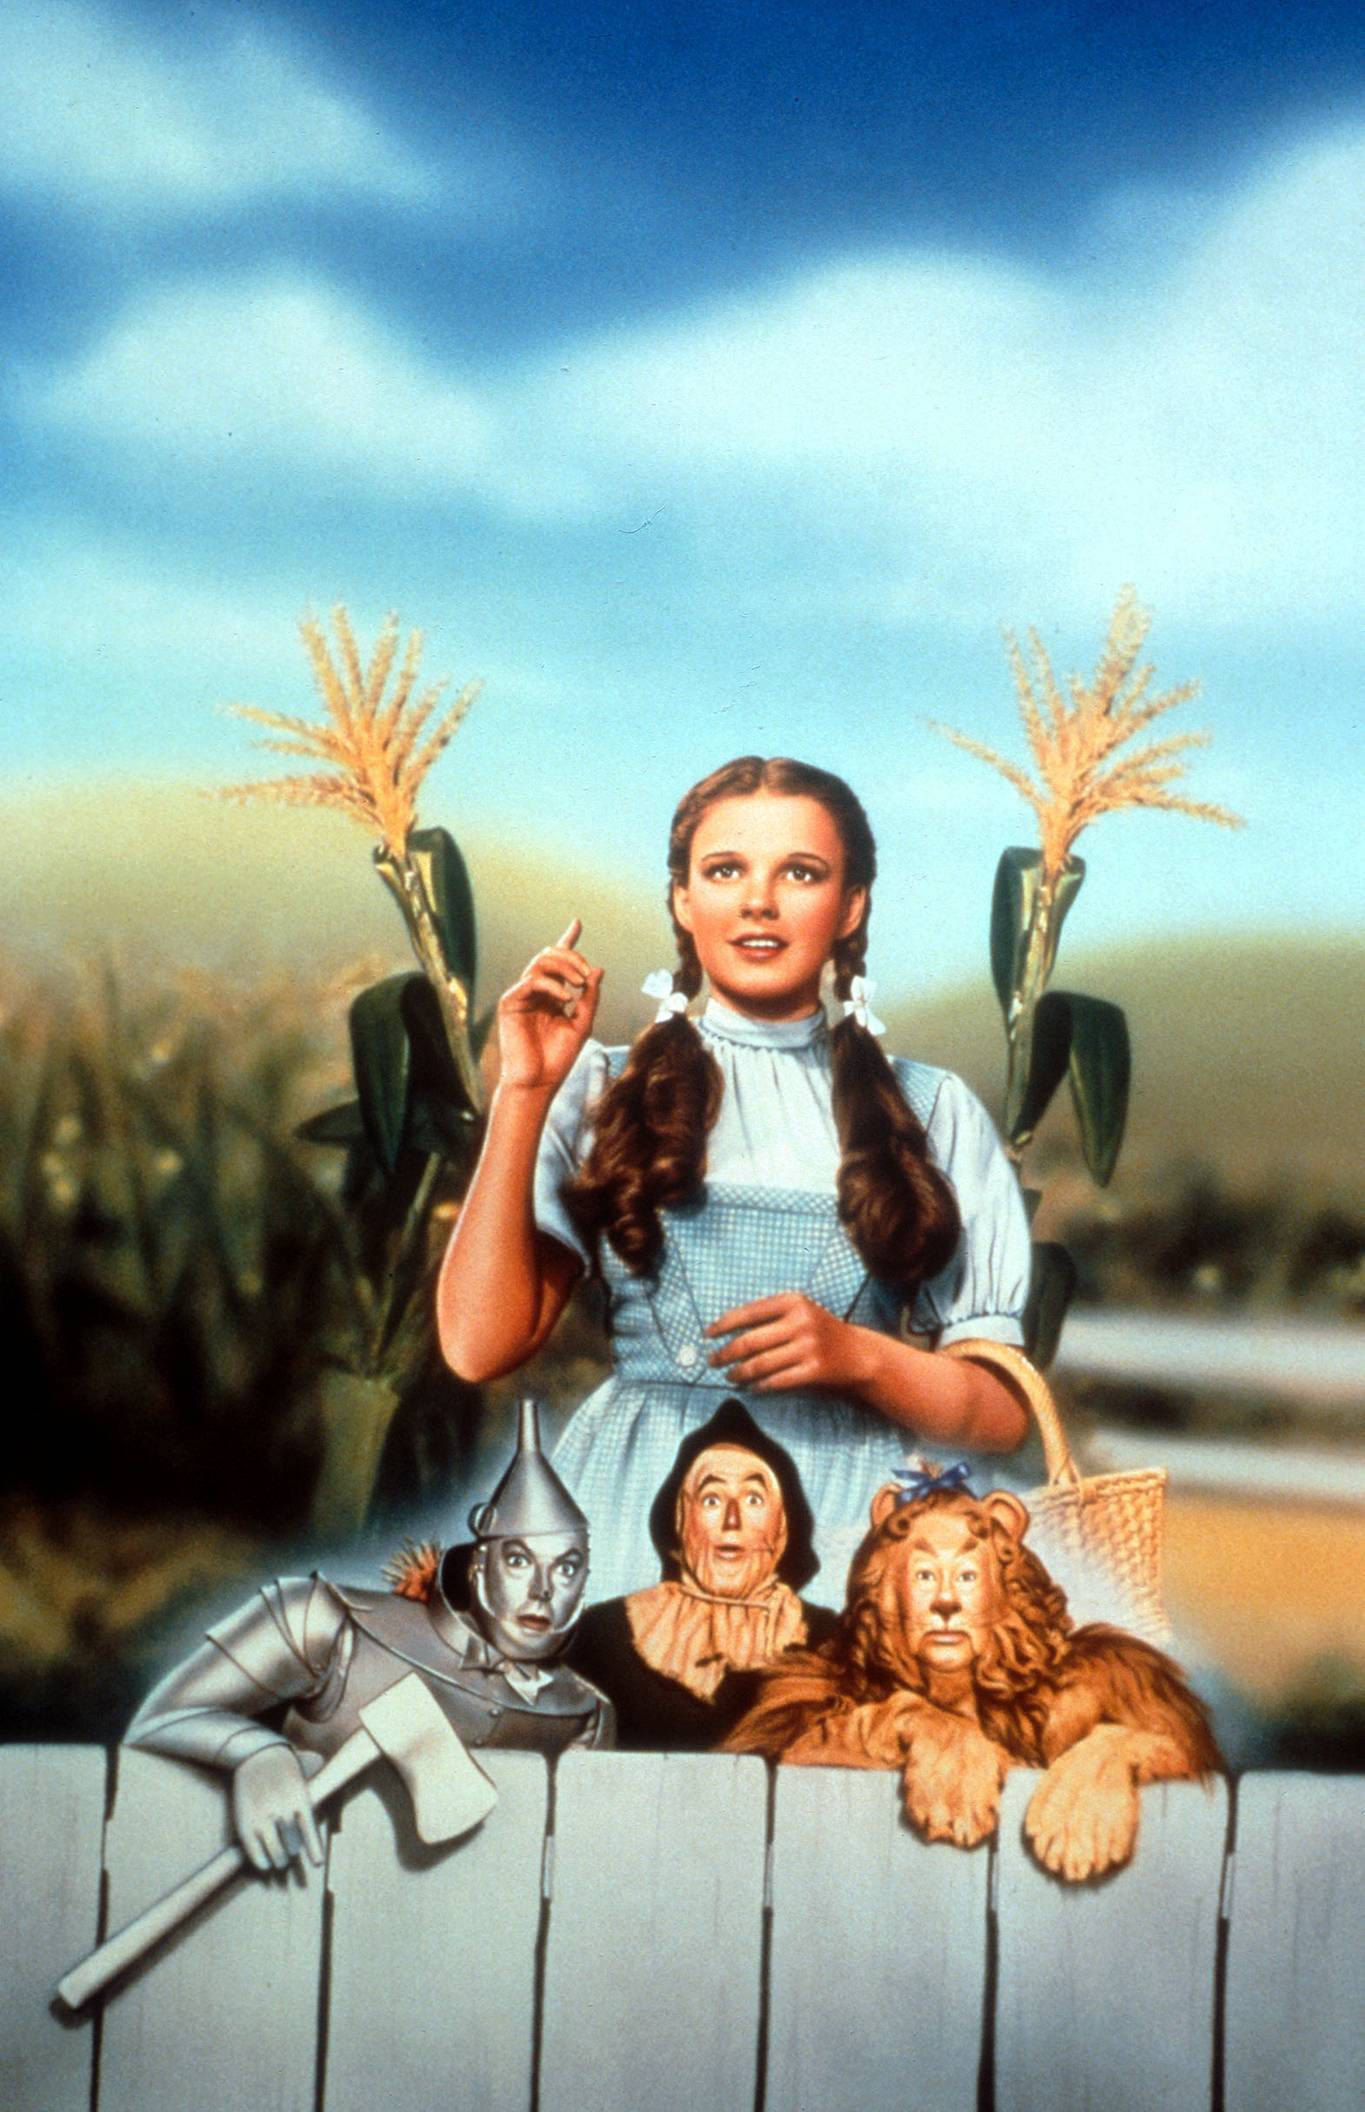 Wizard Of Oz Wallpapers Free